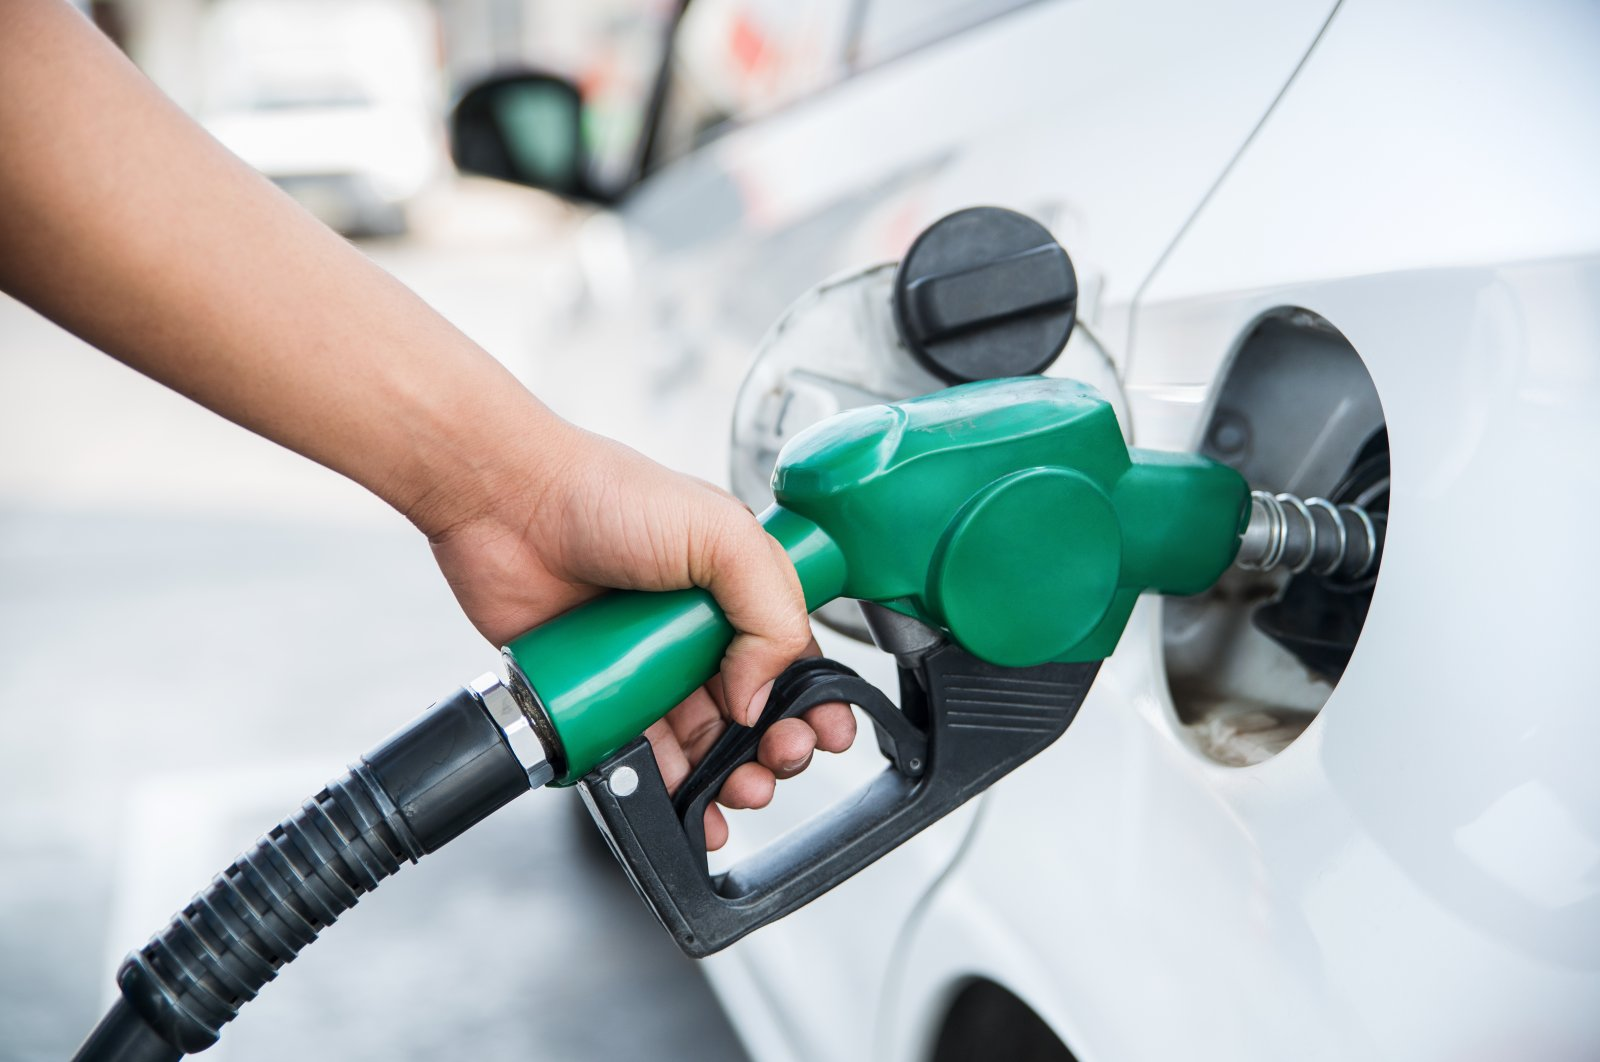 A person uses a handle fuel nozzle to refuel. (Shutterstock Photo)